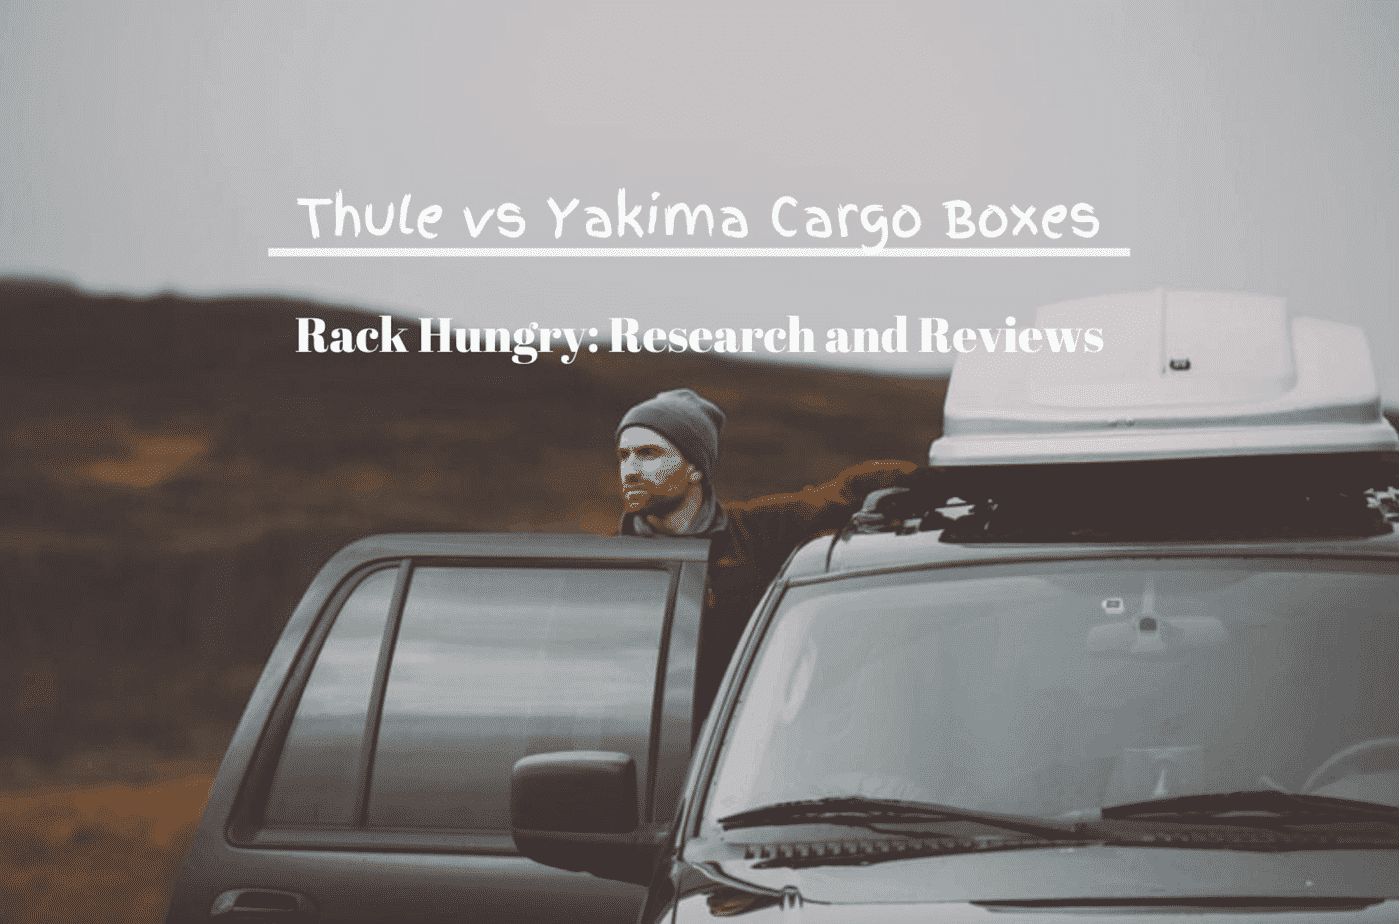 Thule Vs Yakima Cargo Boxes The Ultimate Review Rack Hungry